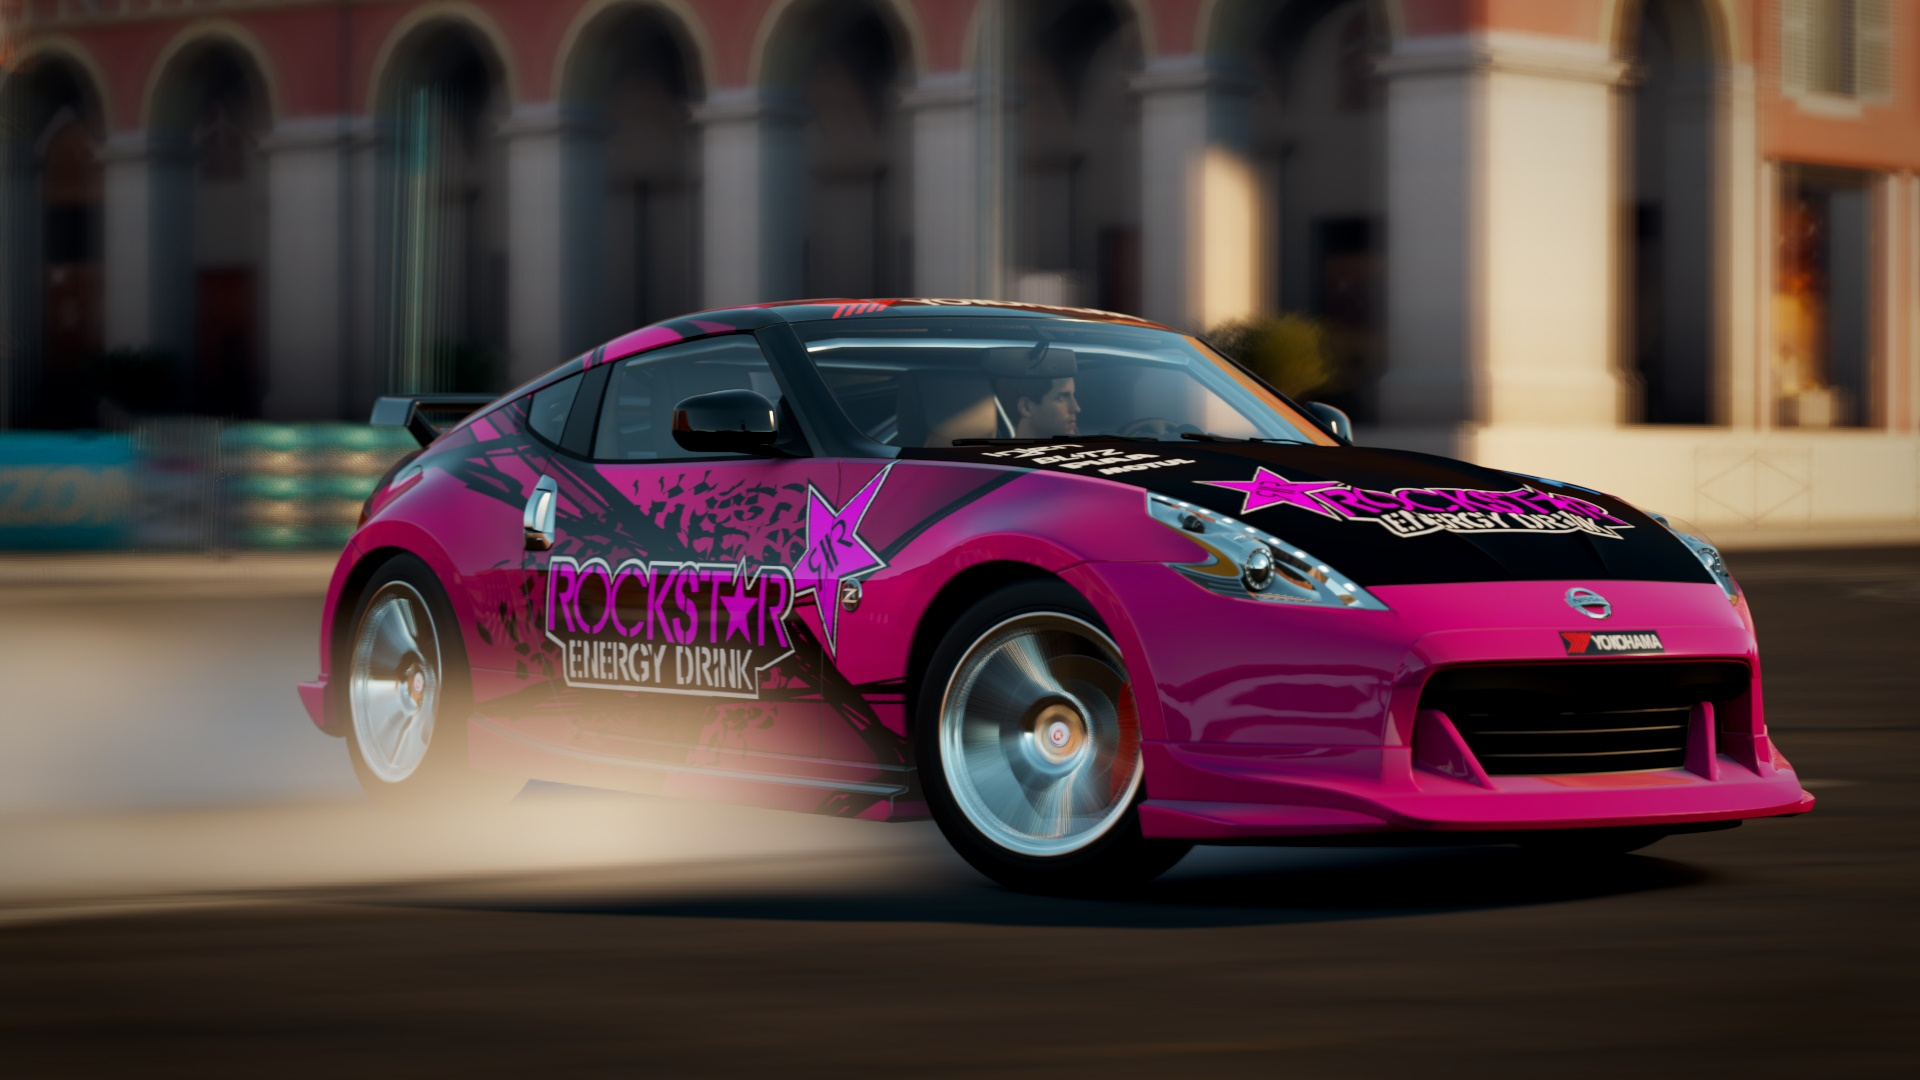 Show Your Drift Cars Page Drift Lounge Forza